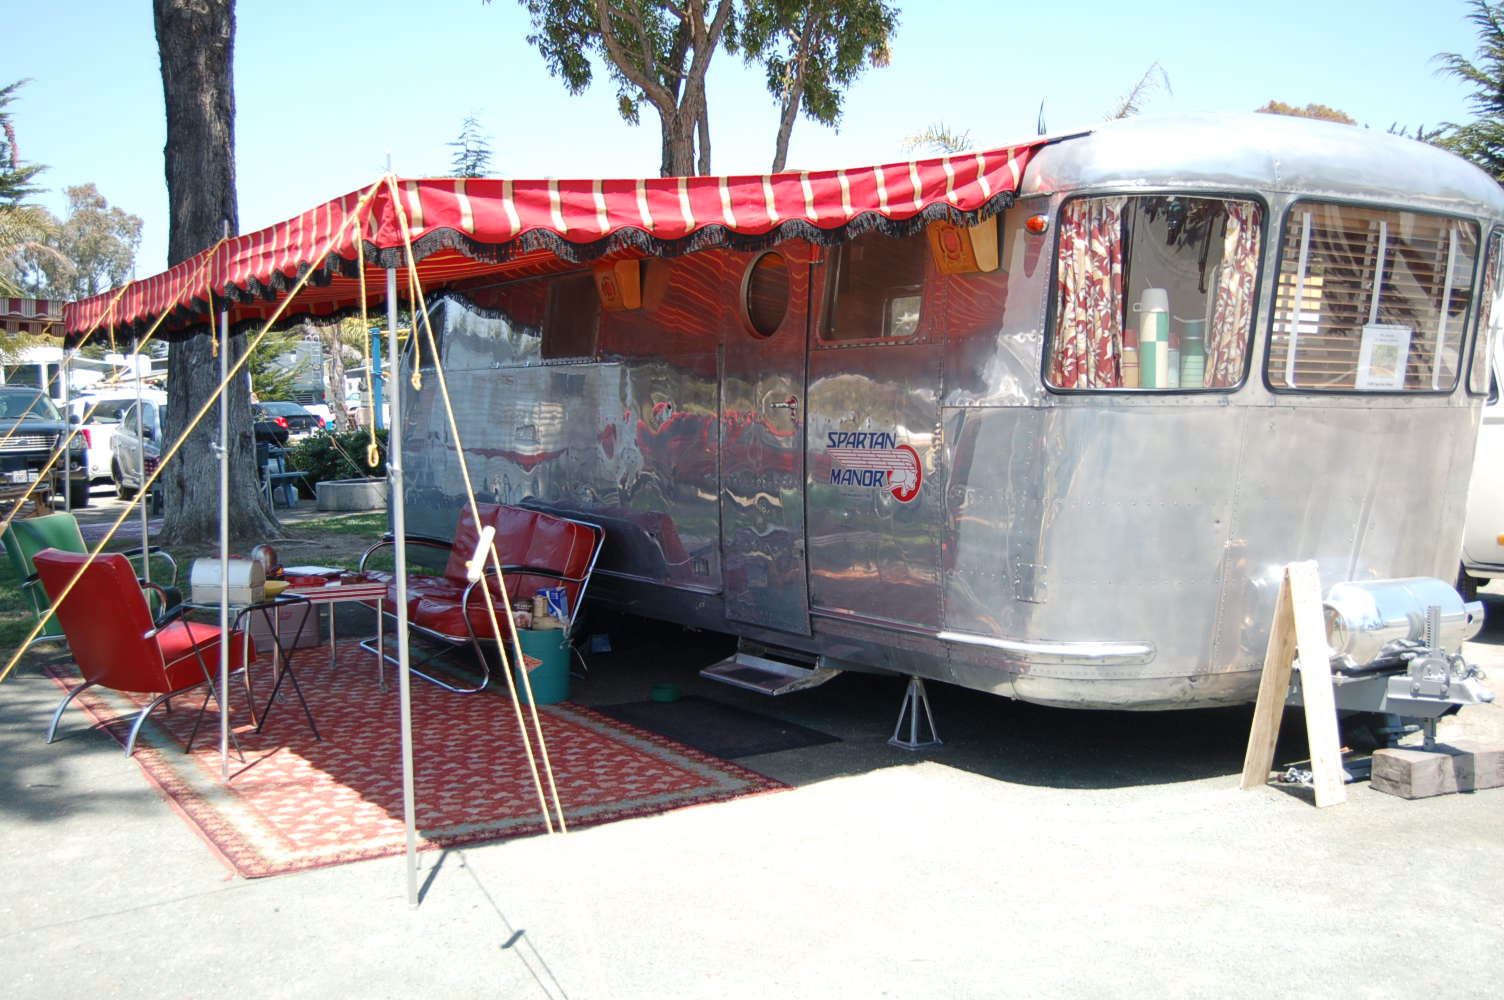 Picture of vintage 1948 spartan manor trailer showing classic wrap around windows